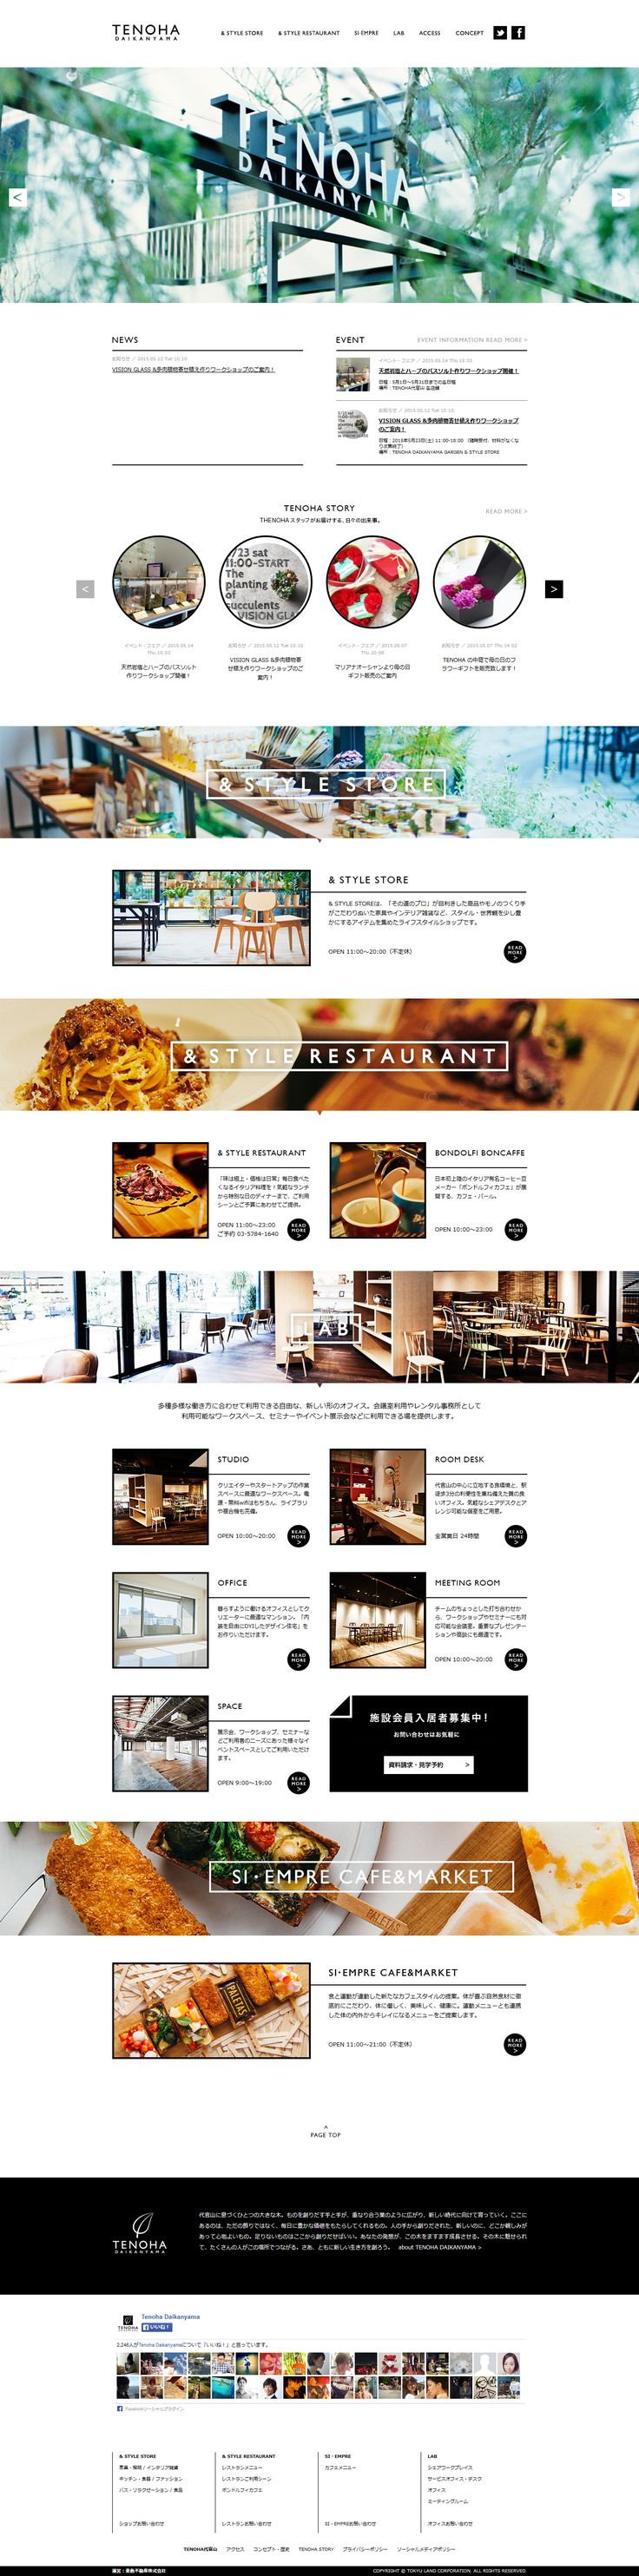 Website of a commercial area with a restaurant, cafe, shop and office.